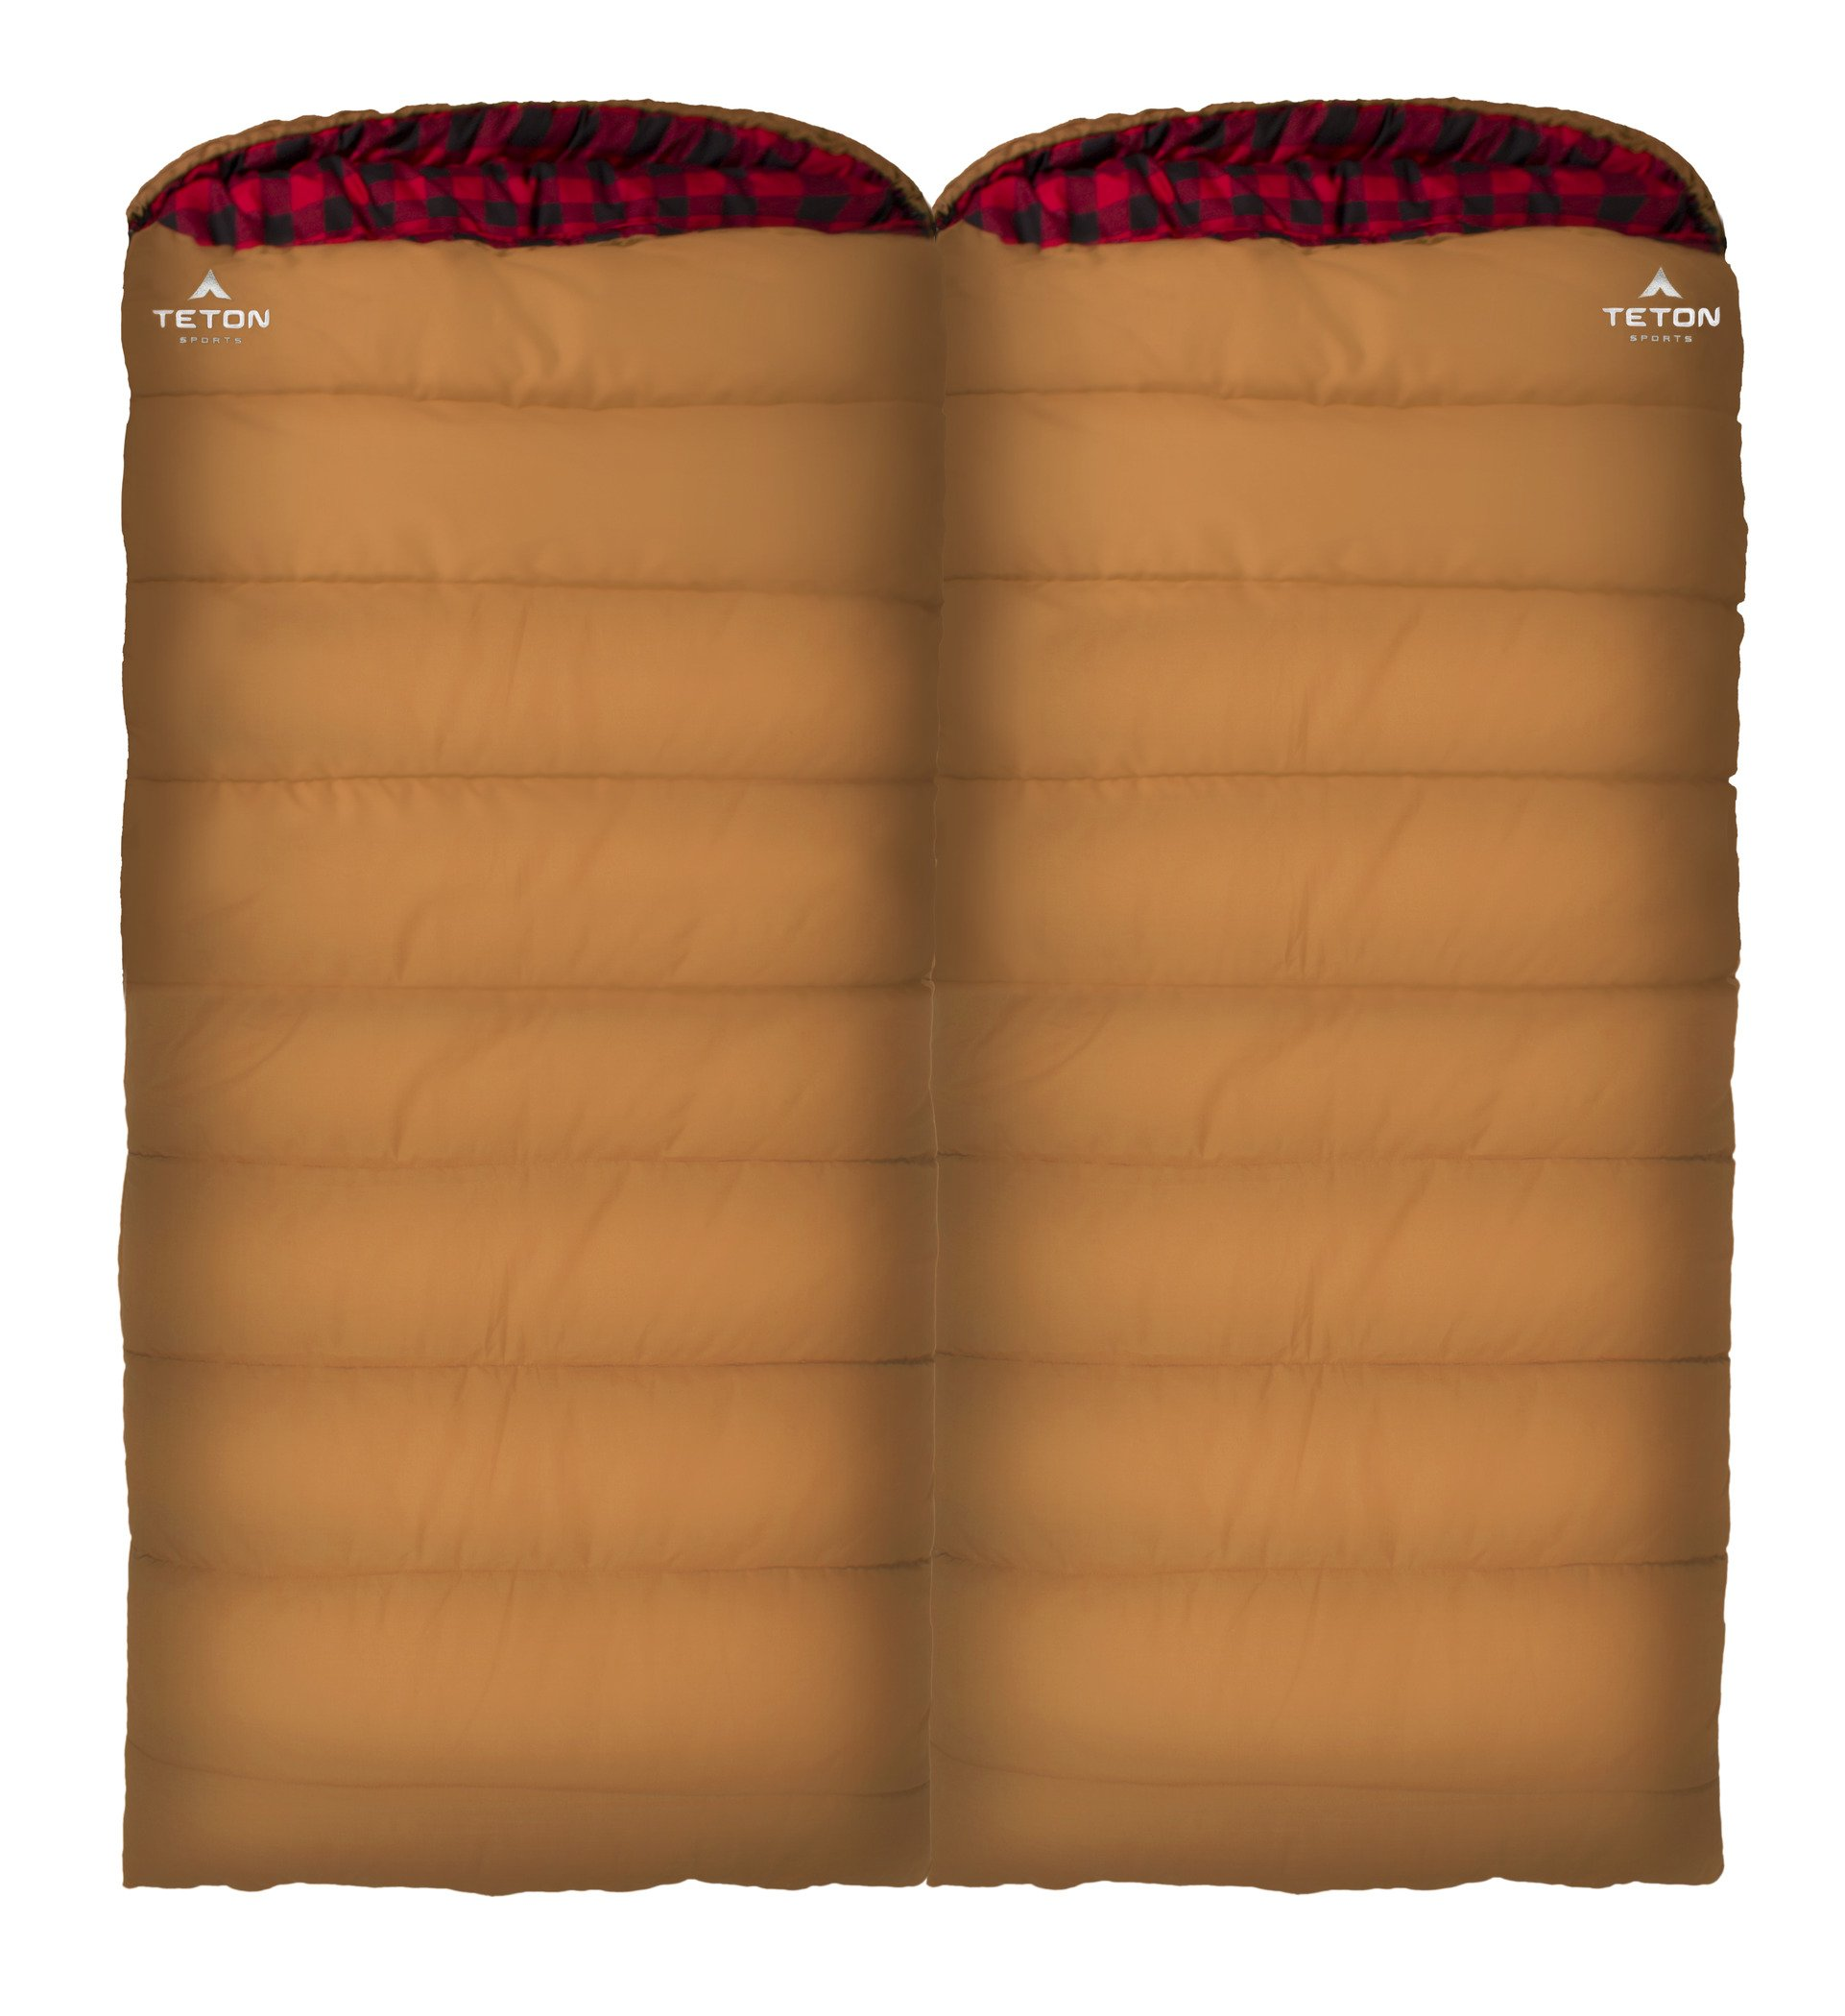 TETON Sports Deer Hunter Sleeping Bag; Warm and Comfortable Sleeping Bag Great for Camping Even in Cold Seasons 6